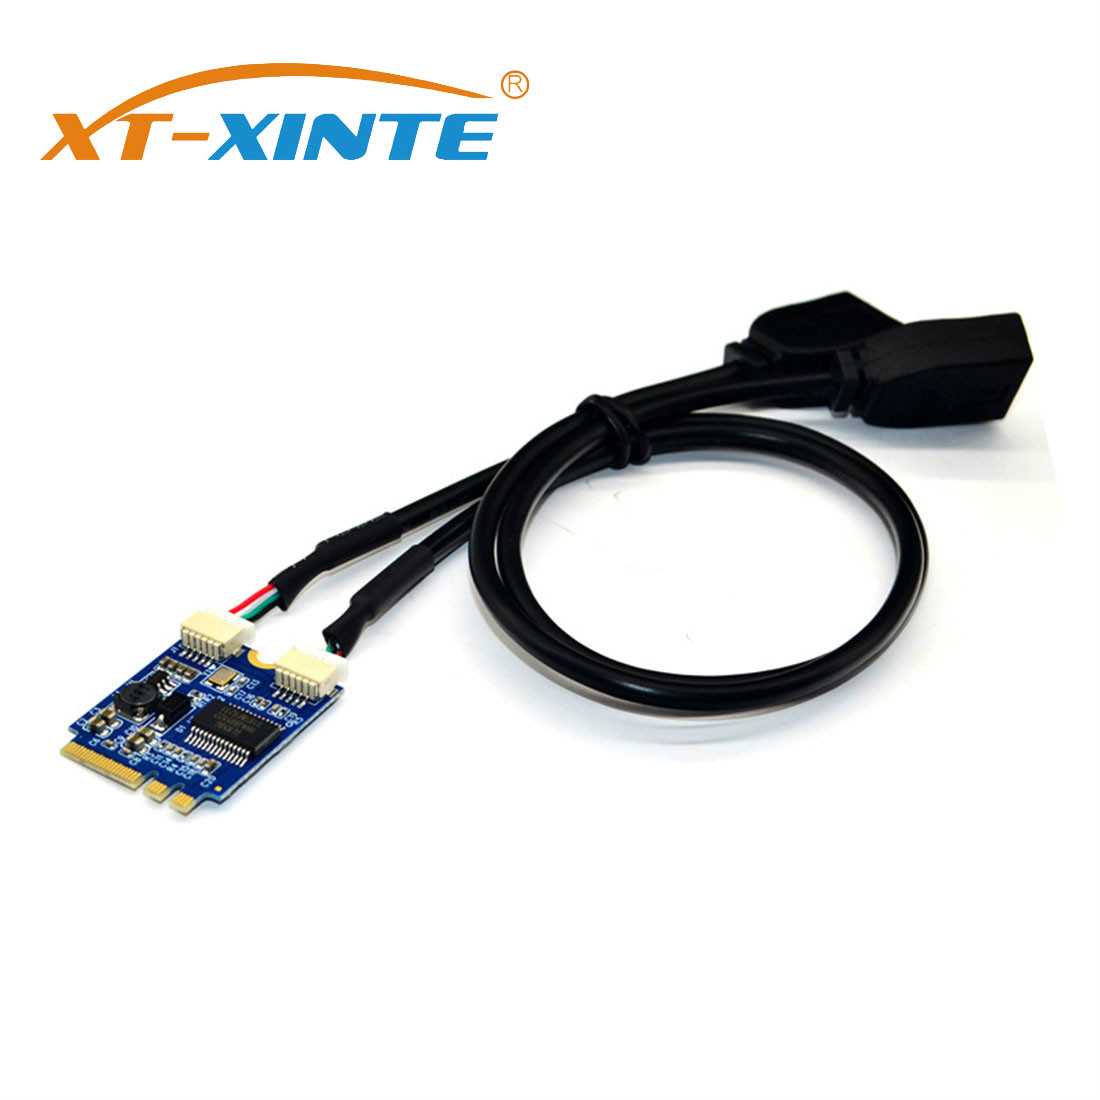 XT-XINTE Riser Card M.2 To USB M.2 NGFF KEY A-E To Dual USB2.0 Expansion Card Converter Cable USB M.2 Riser USB Cable Adapter